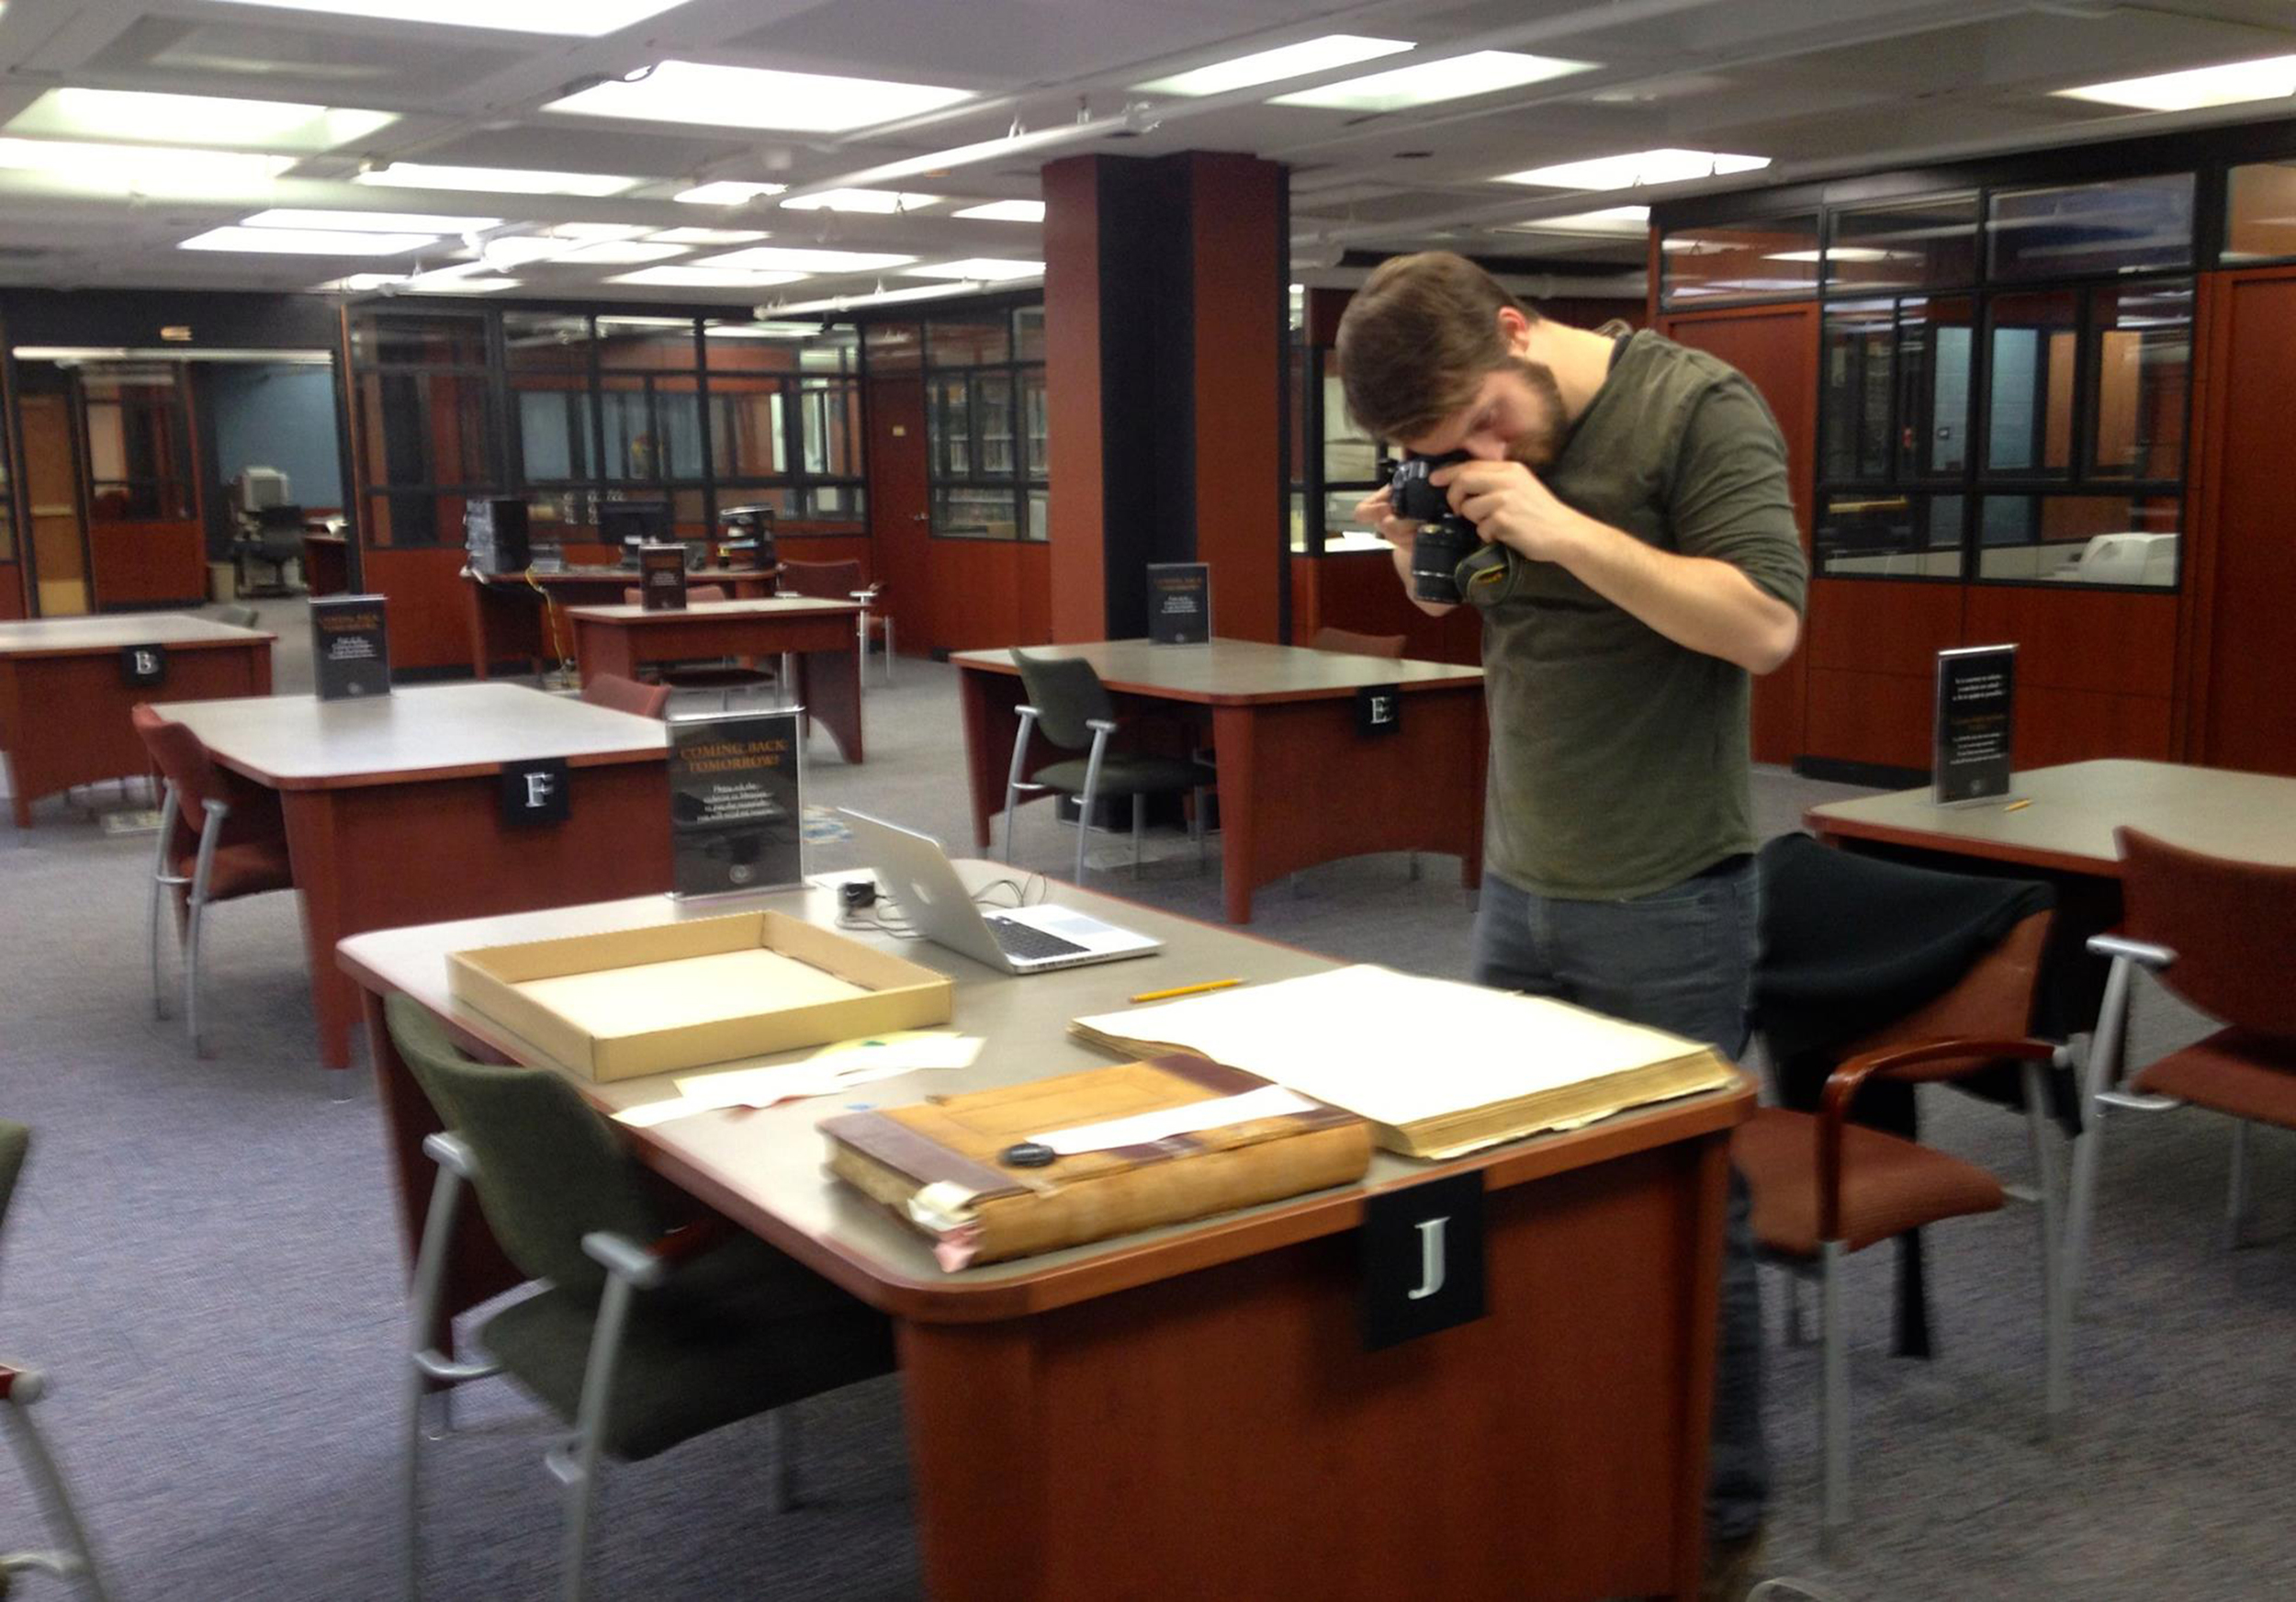 Brian Buckley conducts research in the New York State Archives